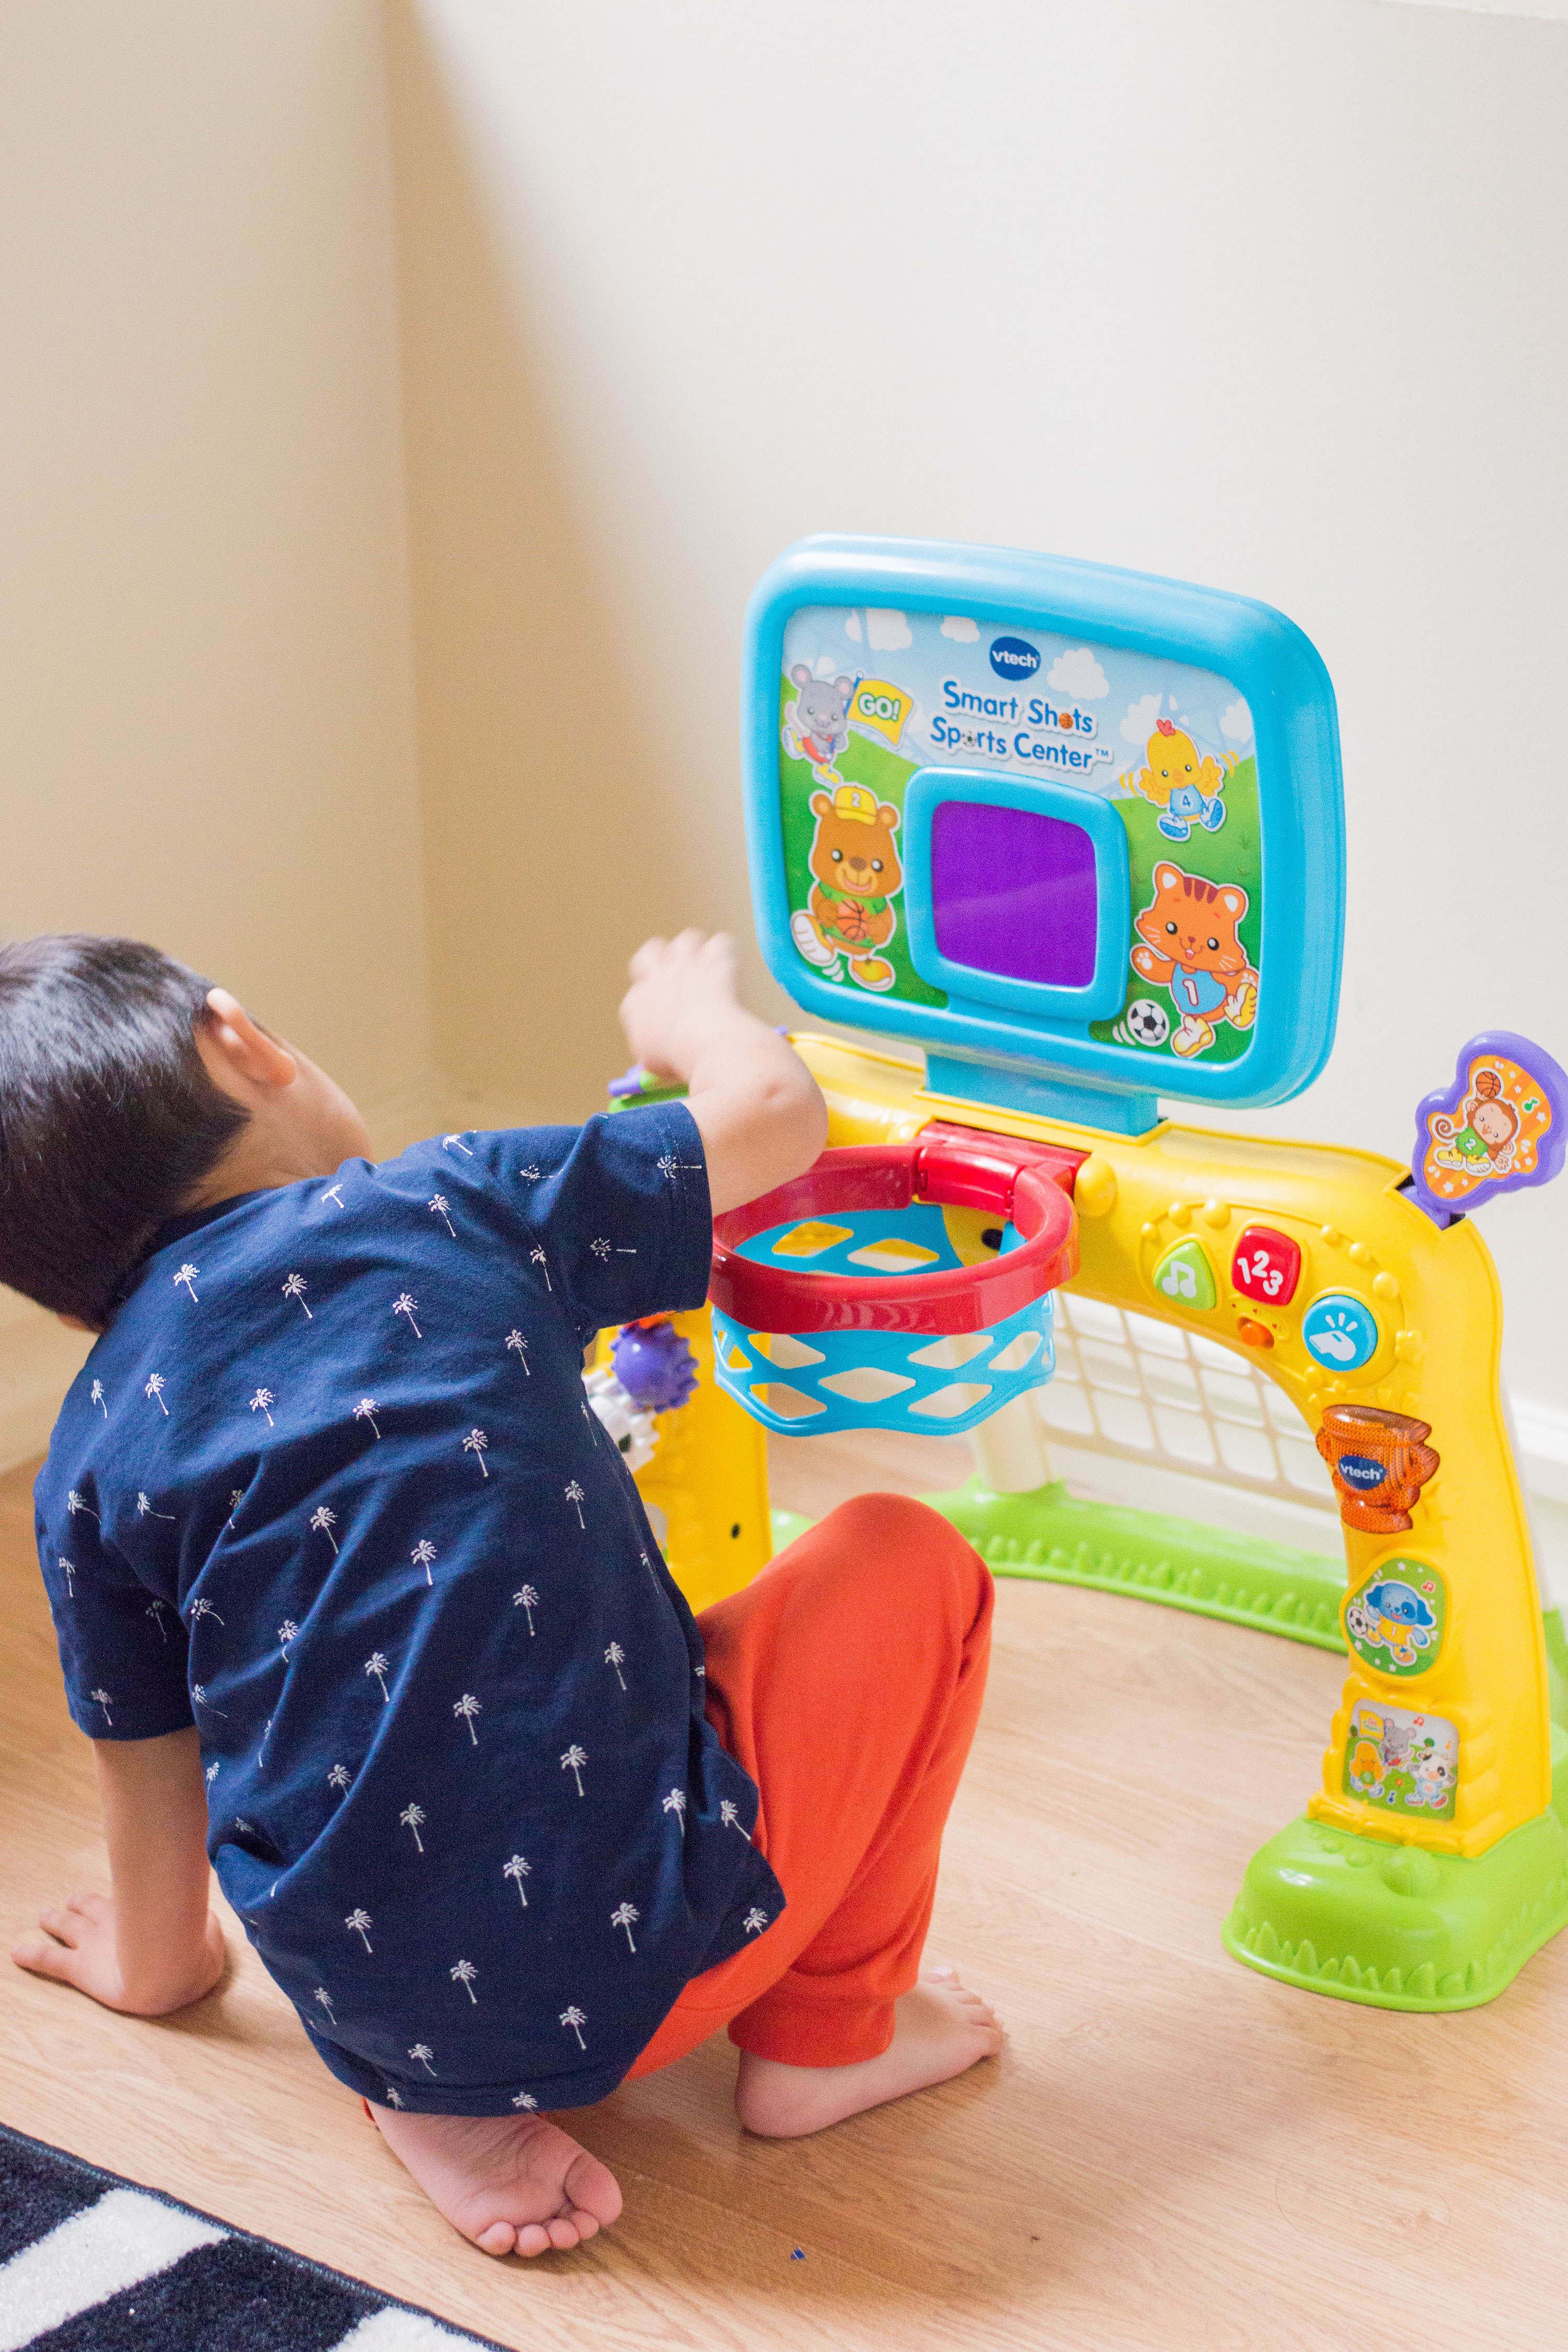 Here are (in our toy-loving opinion) some of the best toddler toys out there. Check out our list and get inspired for your little one - it's play time! #besttoddlertoys #toddlergiftideas